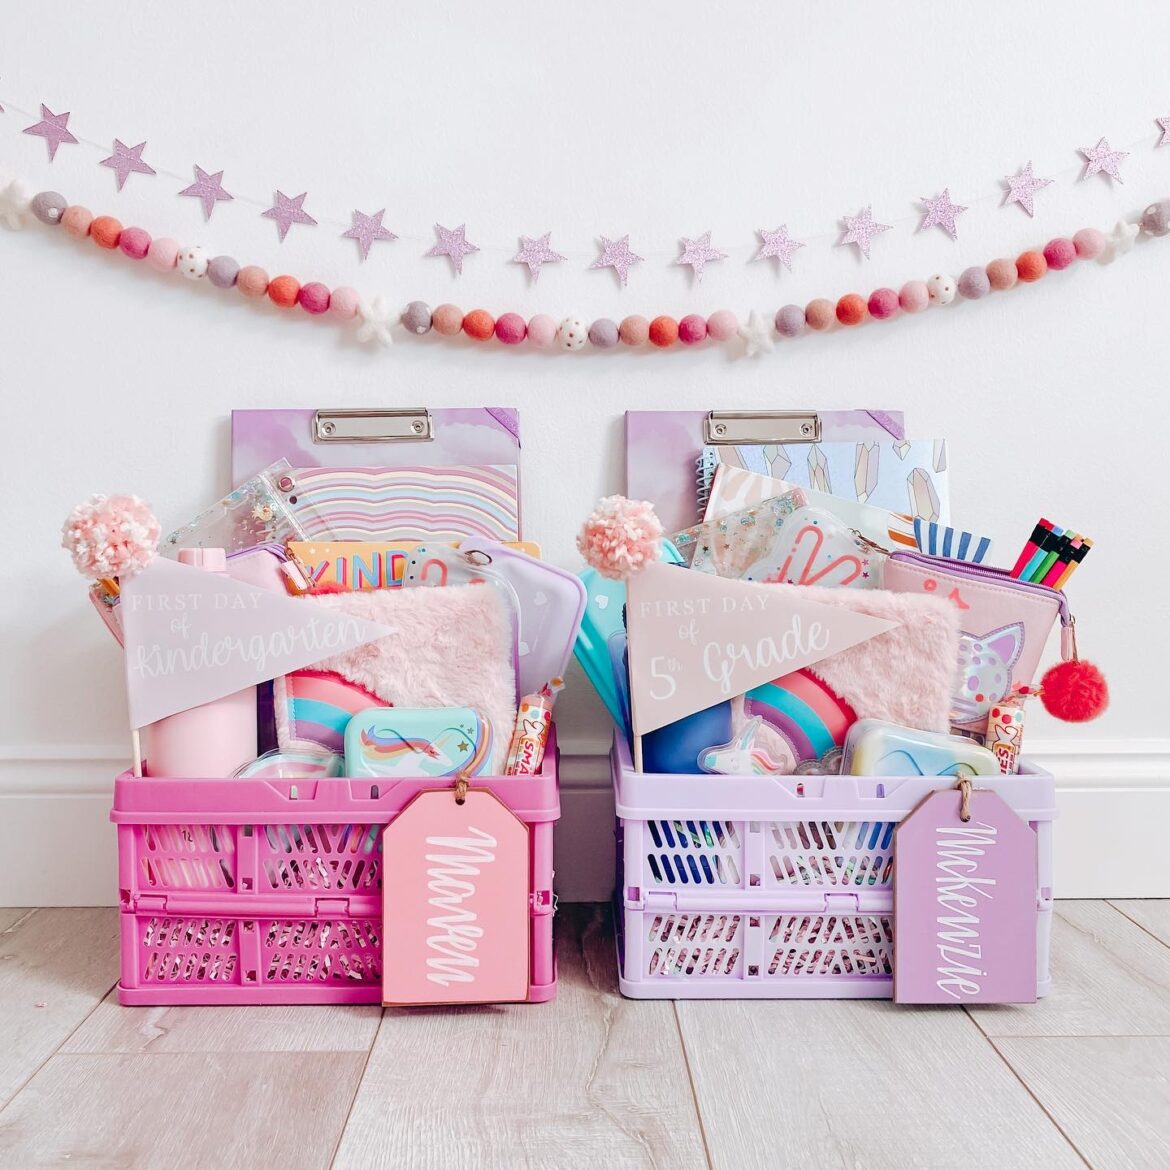 Pink and purple crates with school supplies in them